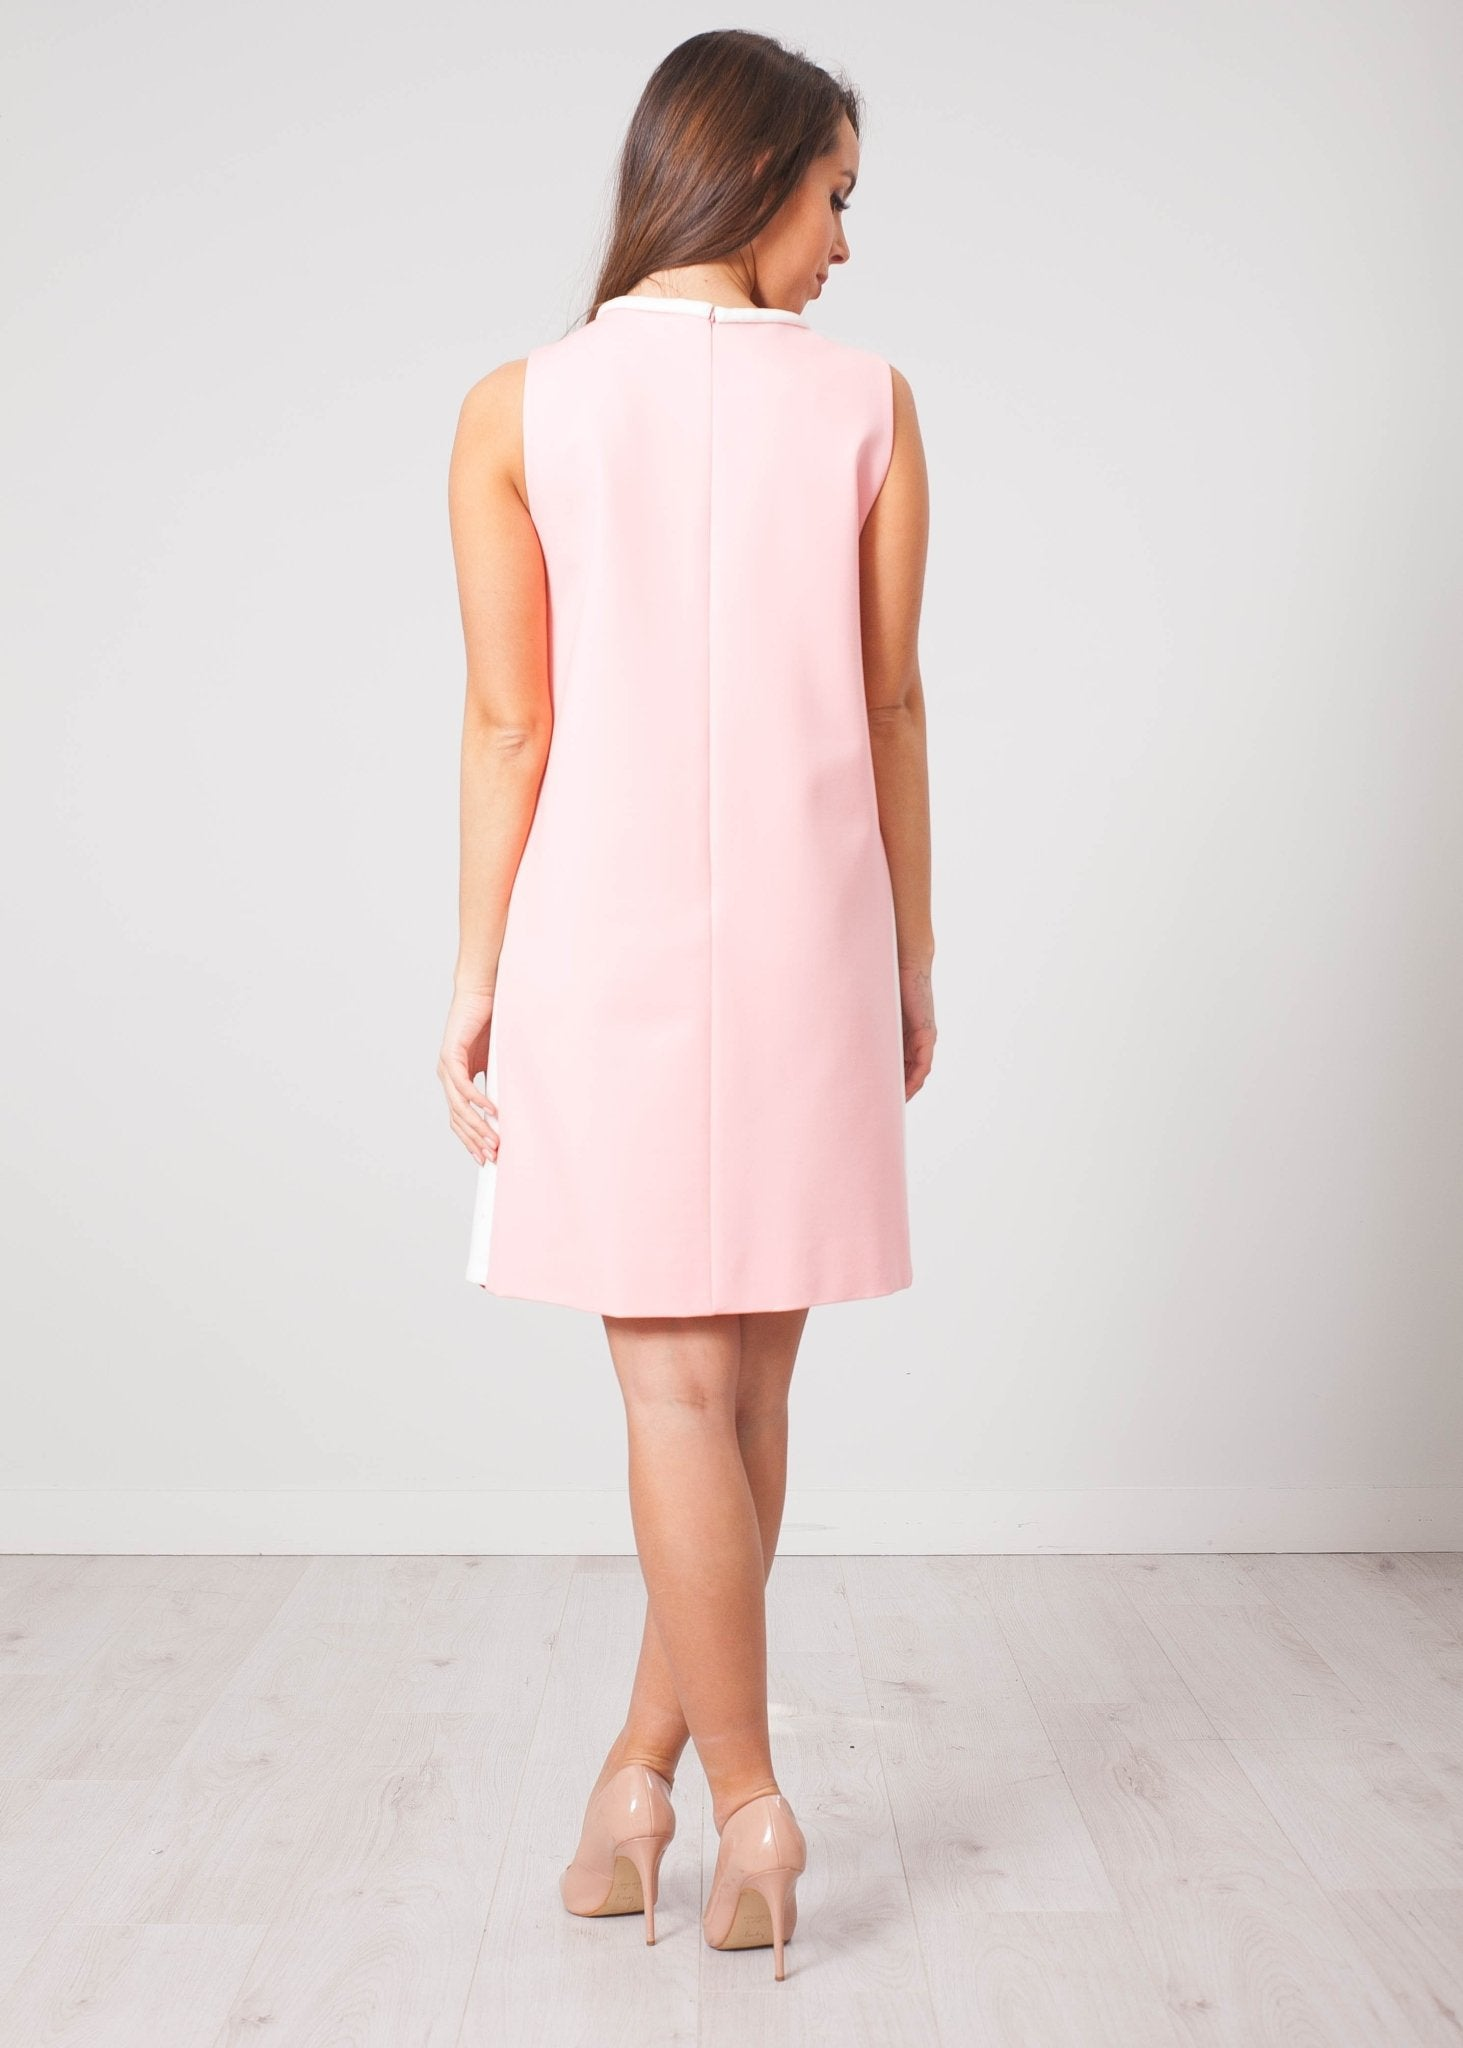 Aliyah Pink Dress - The Walk in Wardrobe